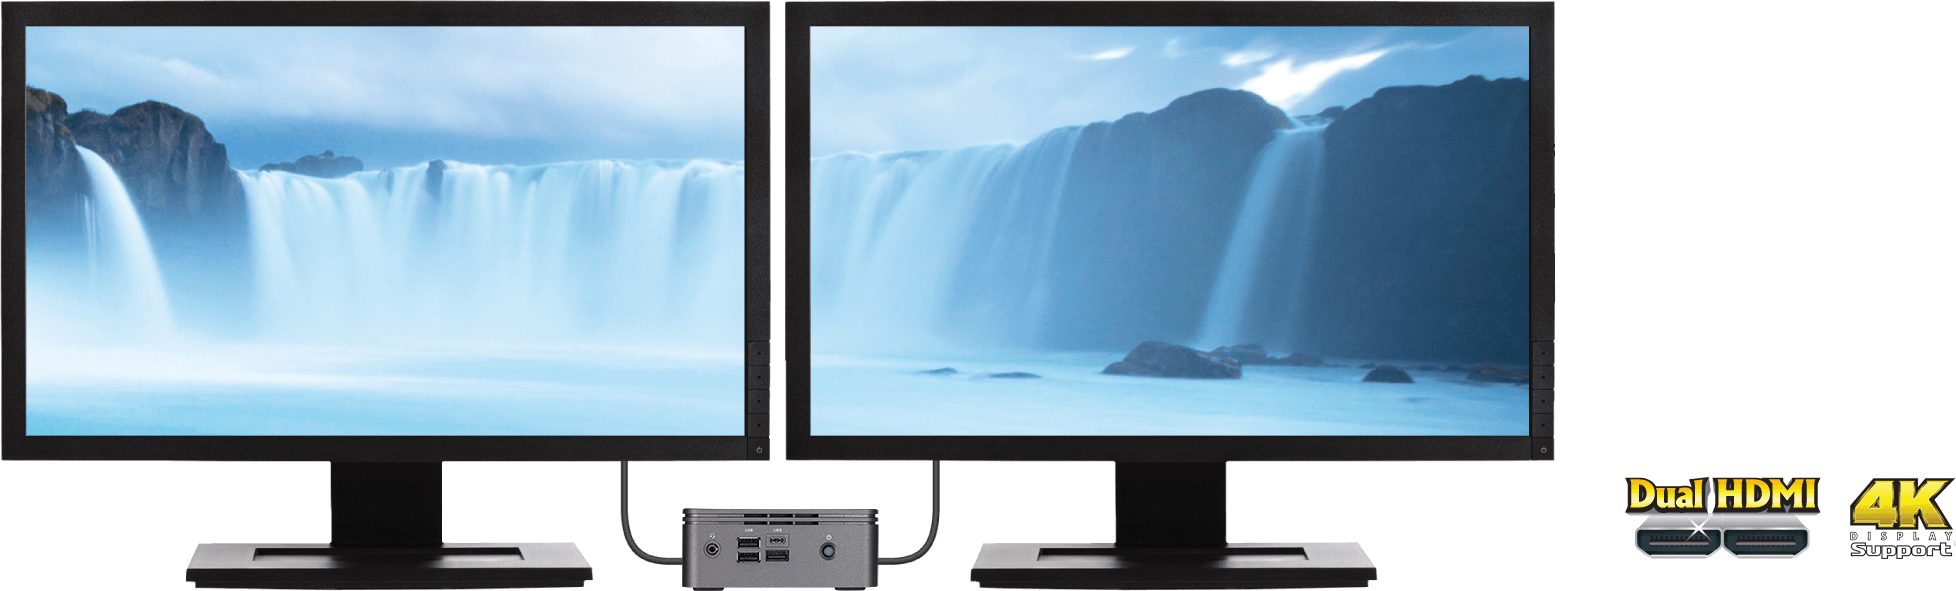 two monitor connecting side by side